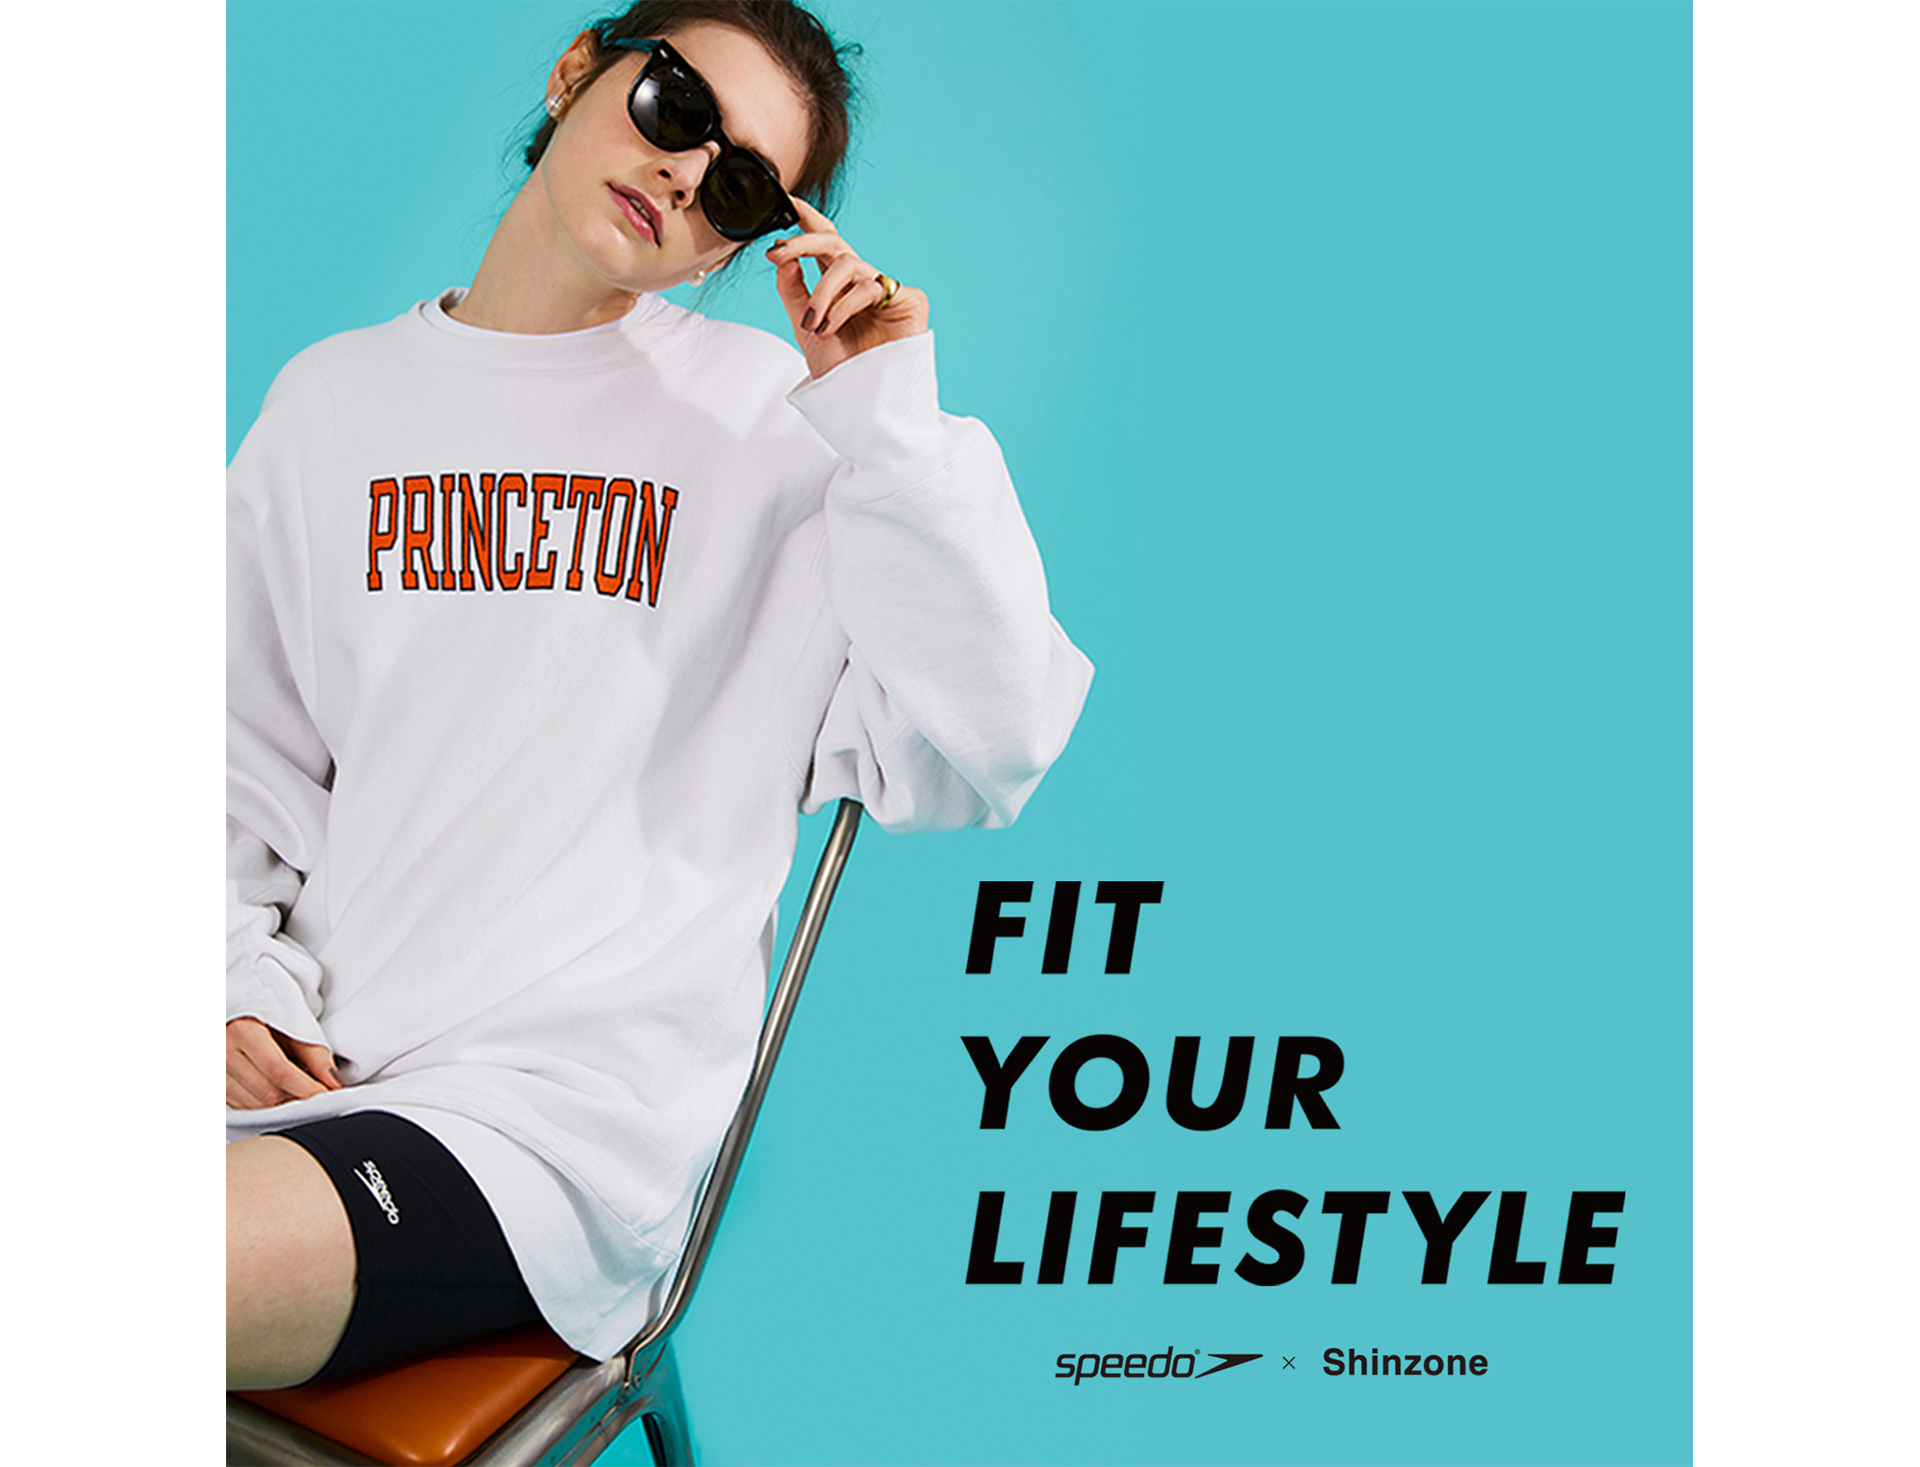 NEWS_FIT-YOUR-LIFESTYLE